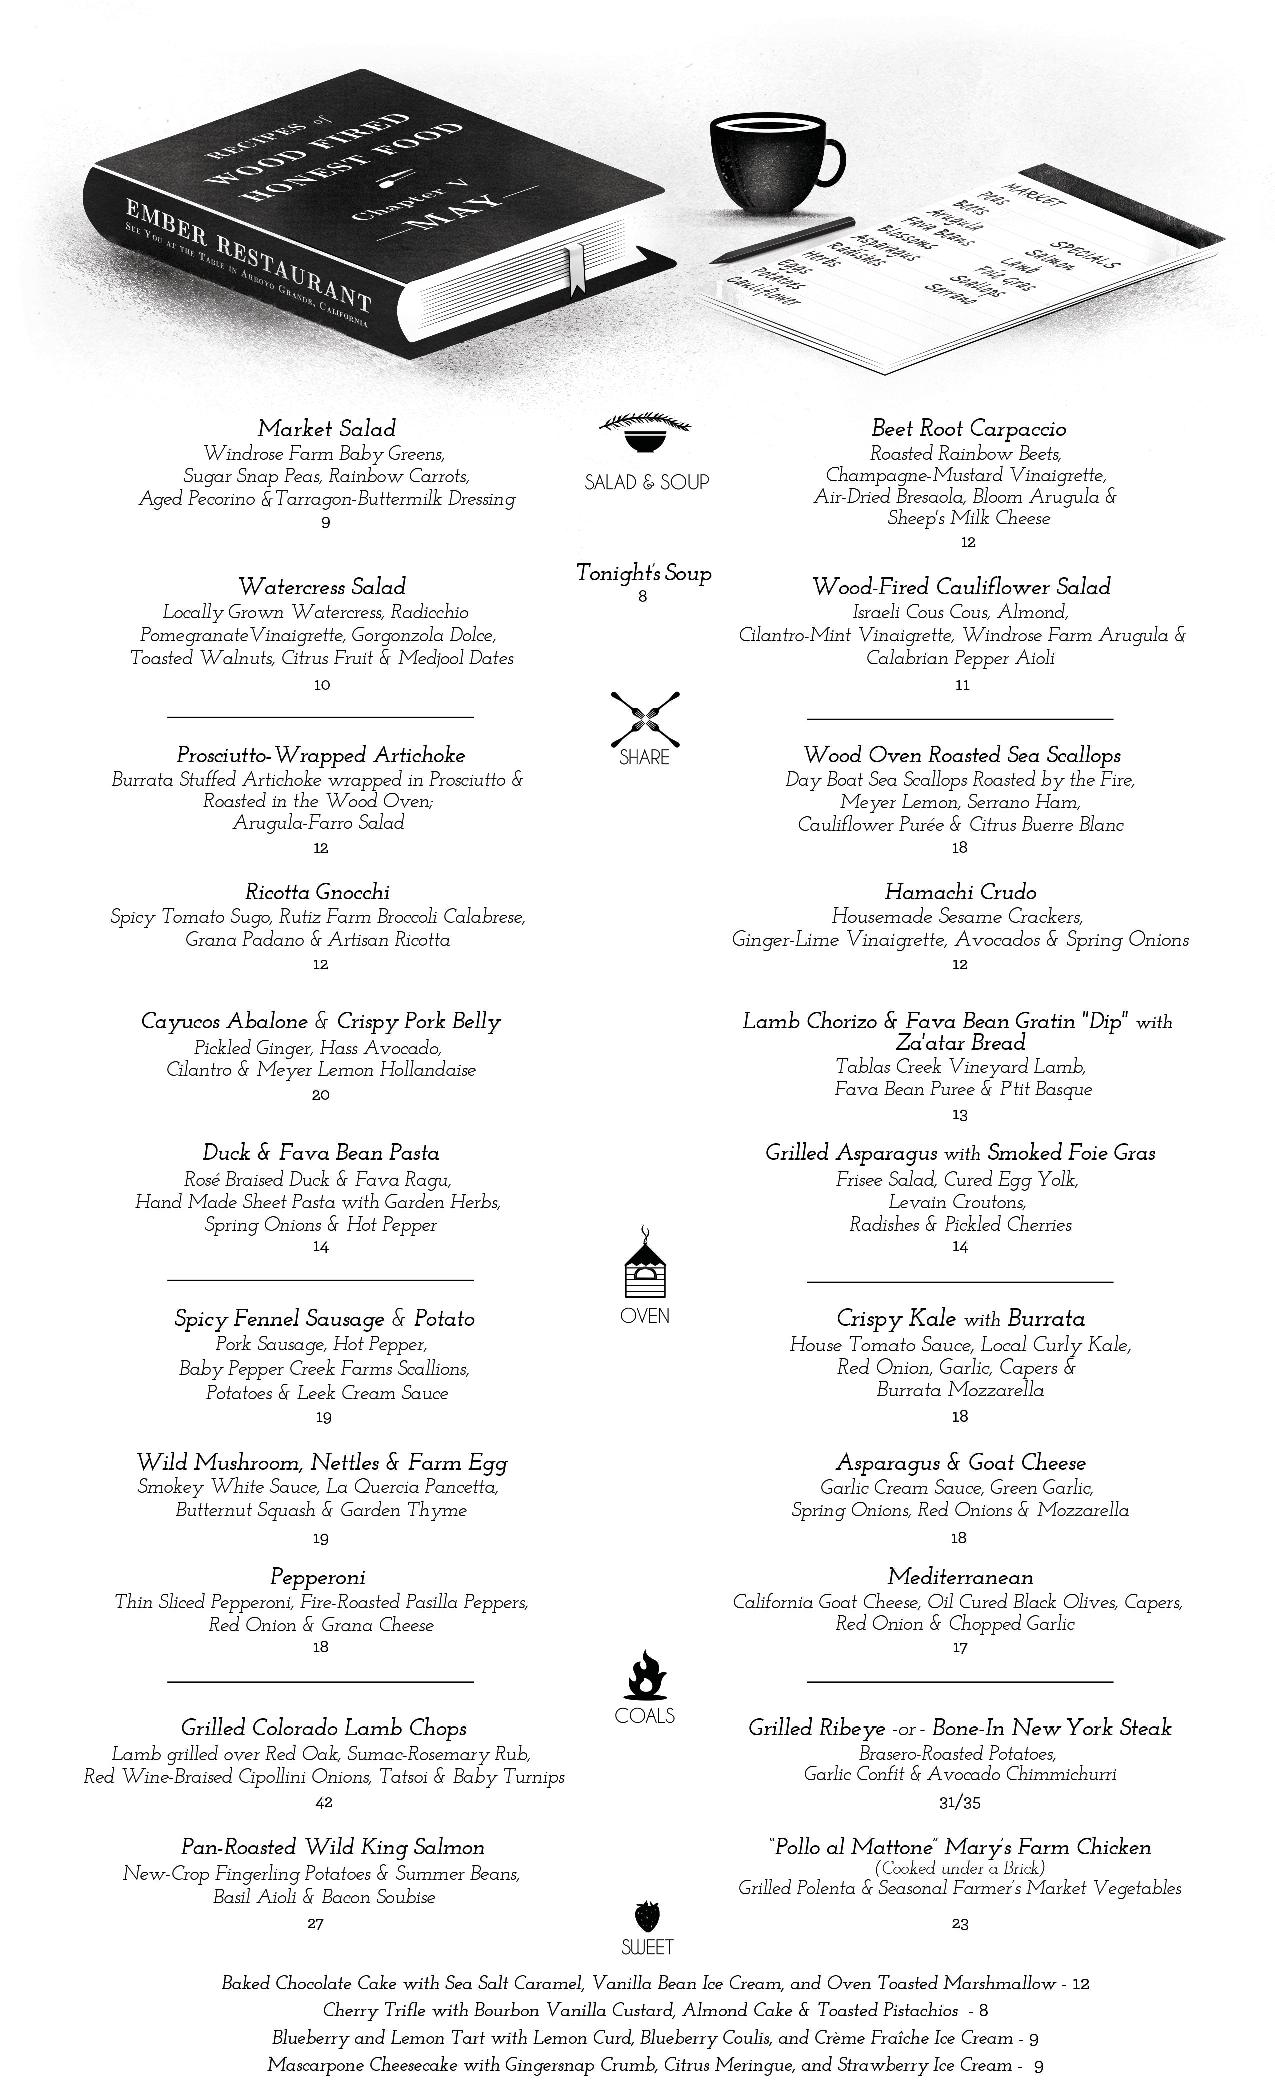 ember-restaurant-may-menu